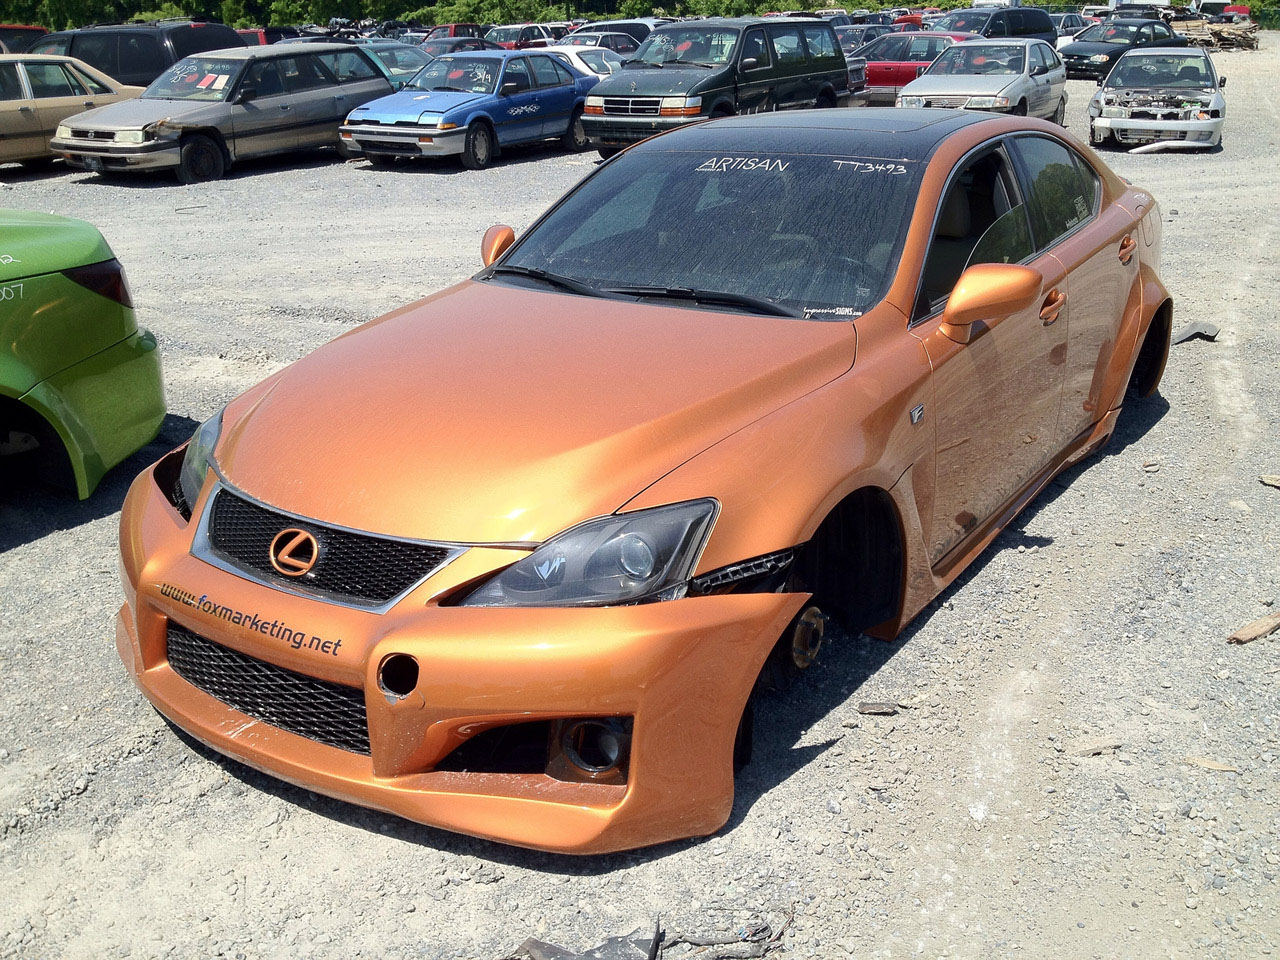 Crushed Lexus Sema Cars Photo Gallery Autoblog